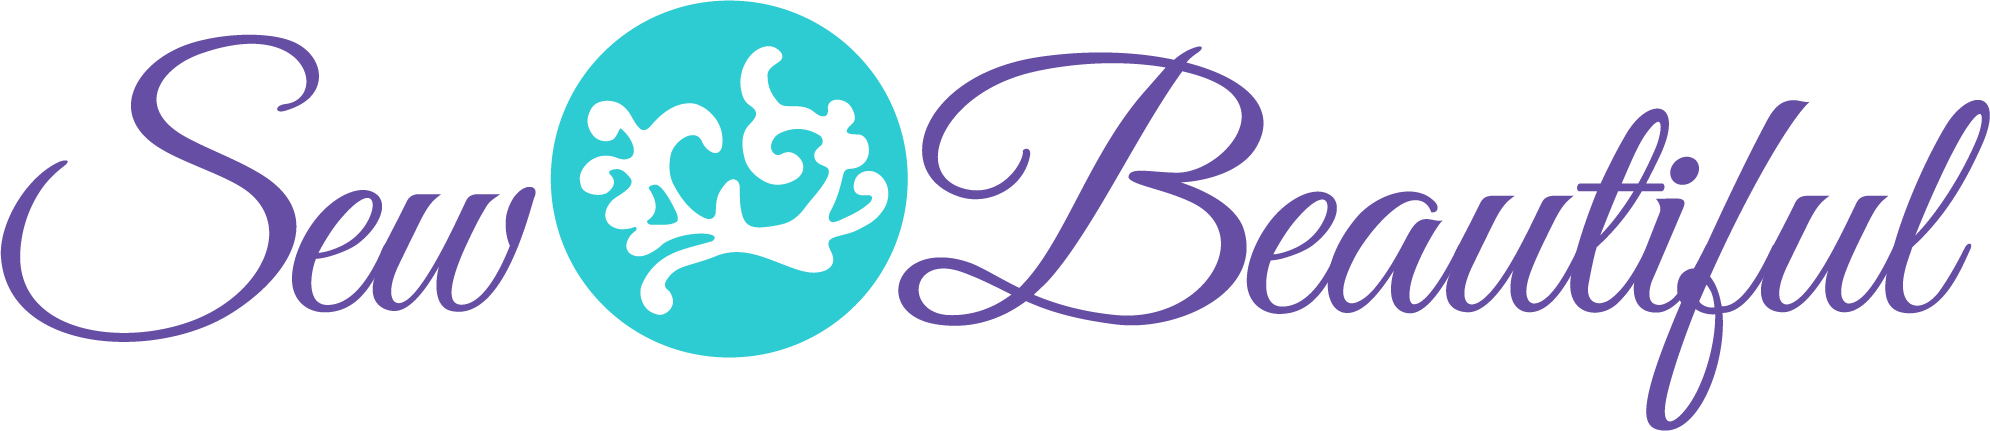 Sew Beautiful Windows Logo